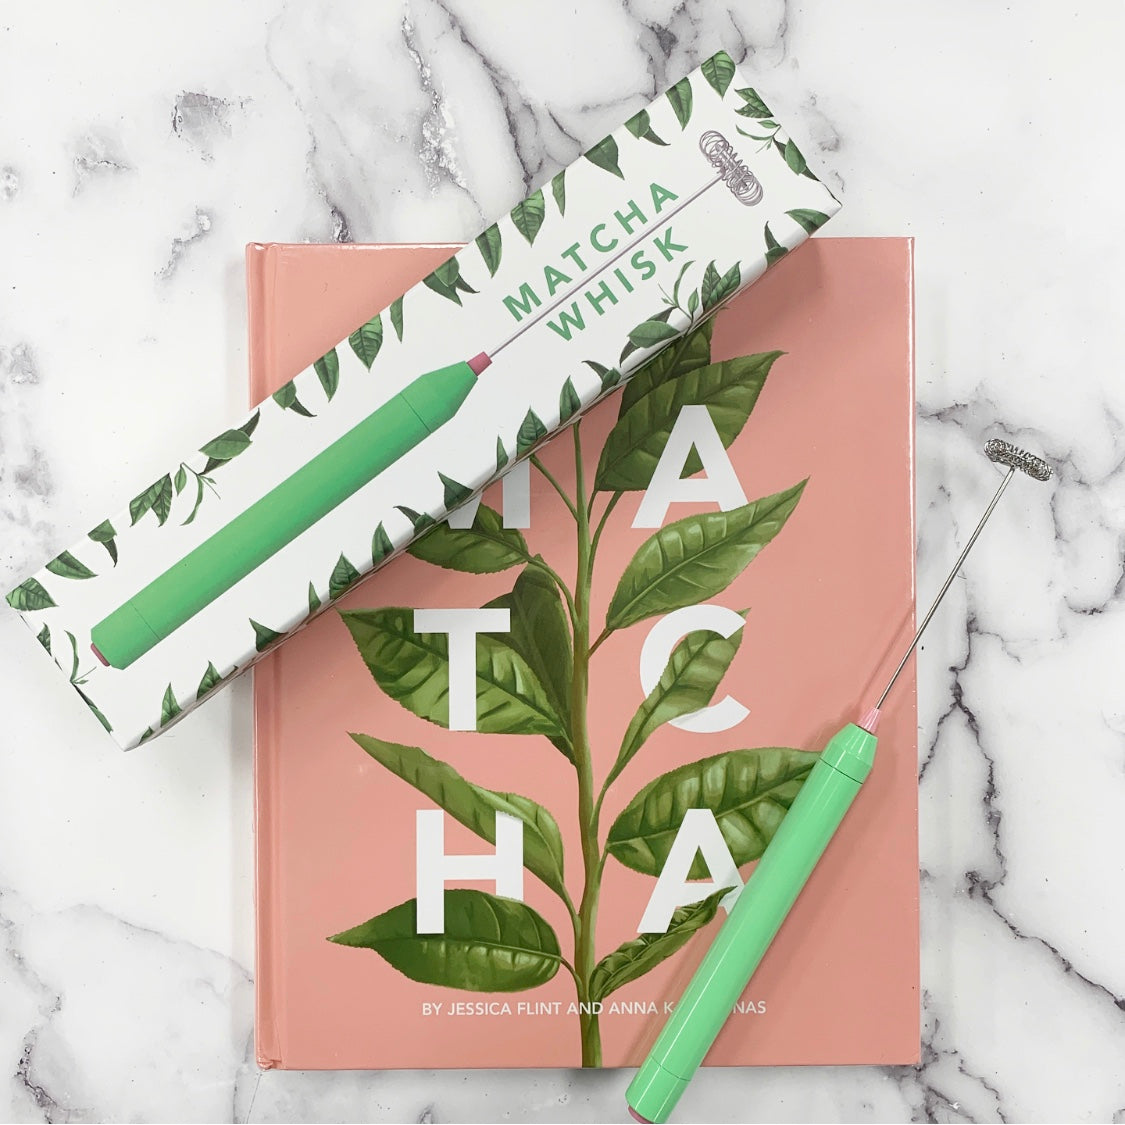 W&P Matcha Book